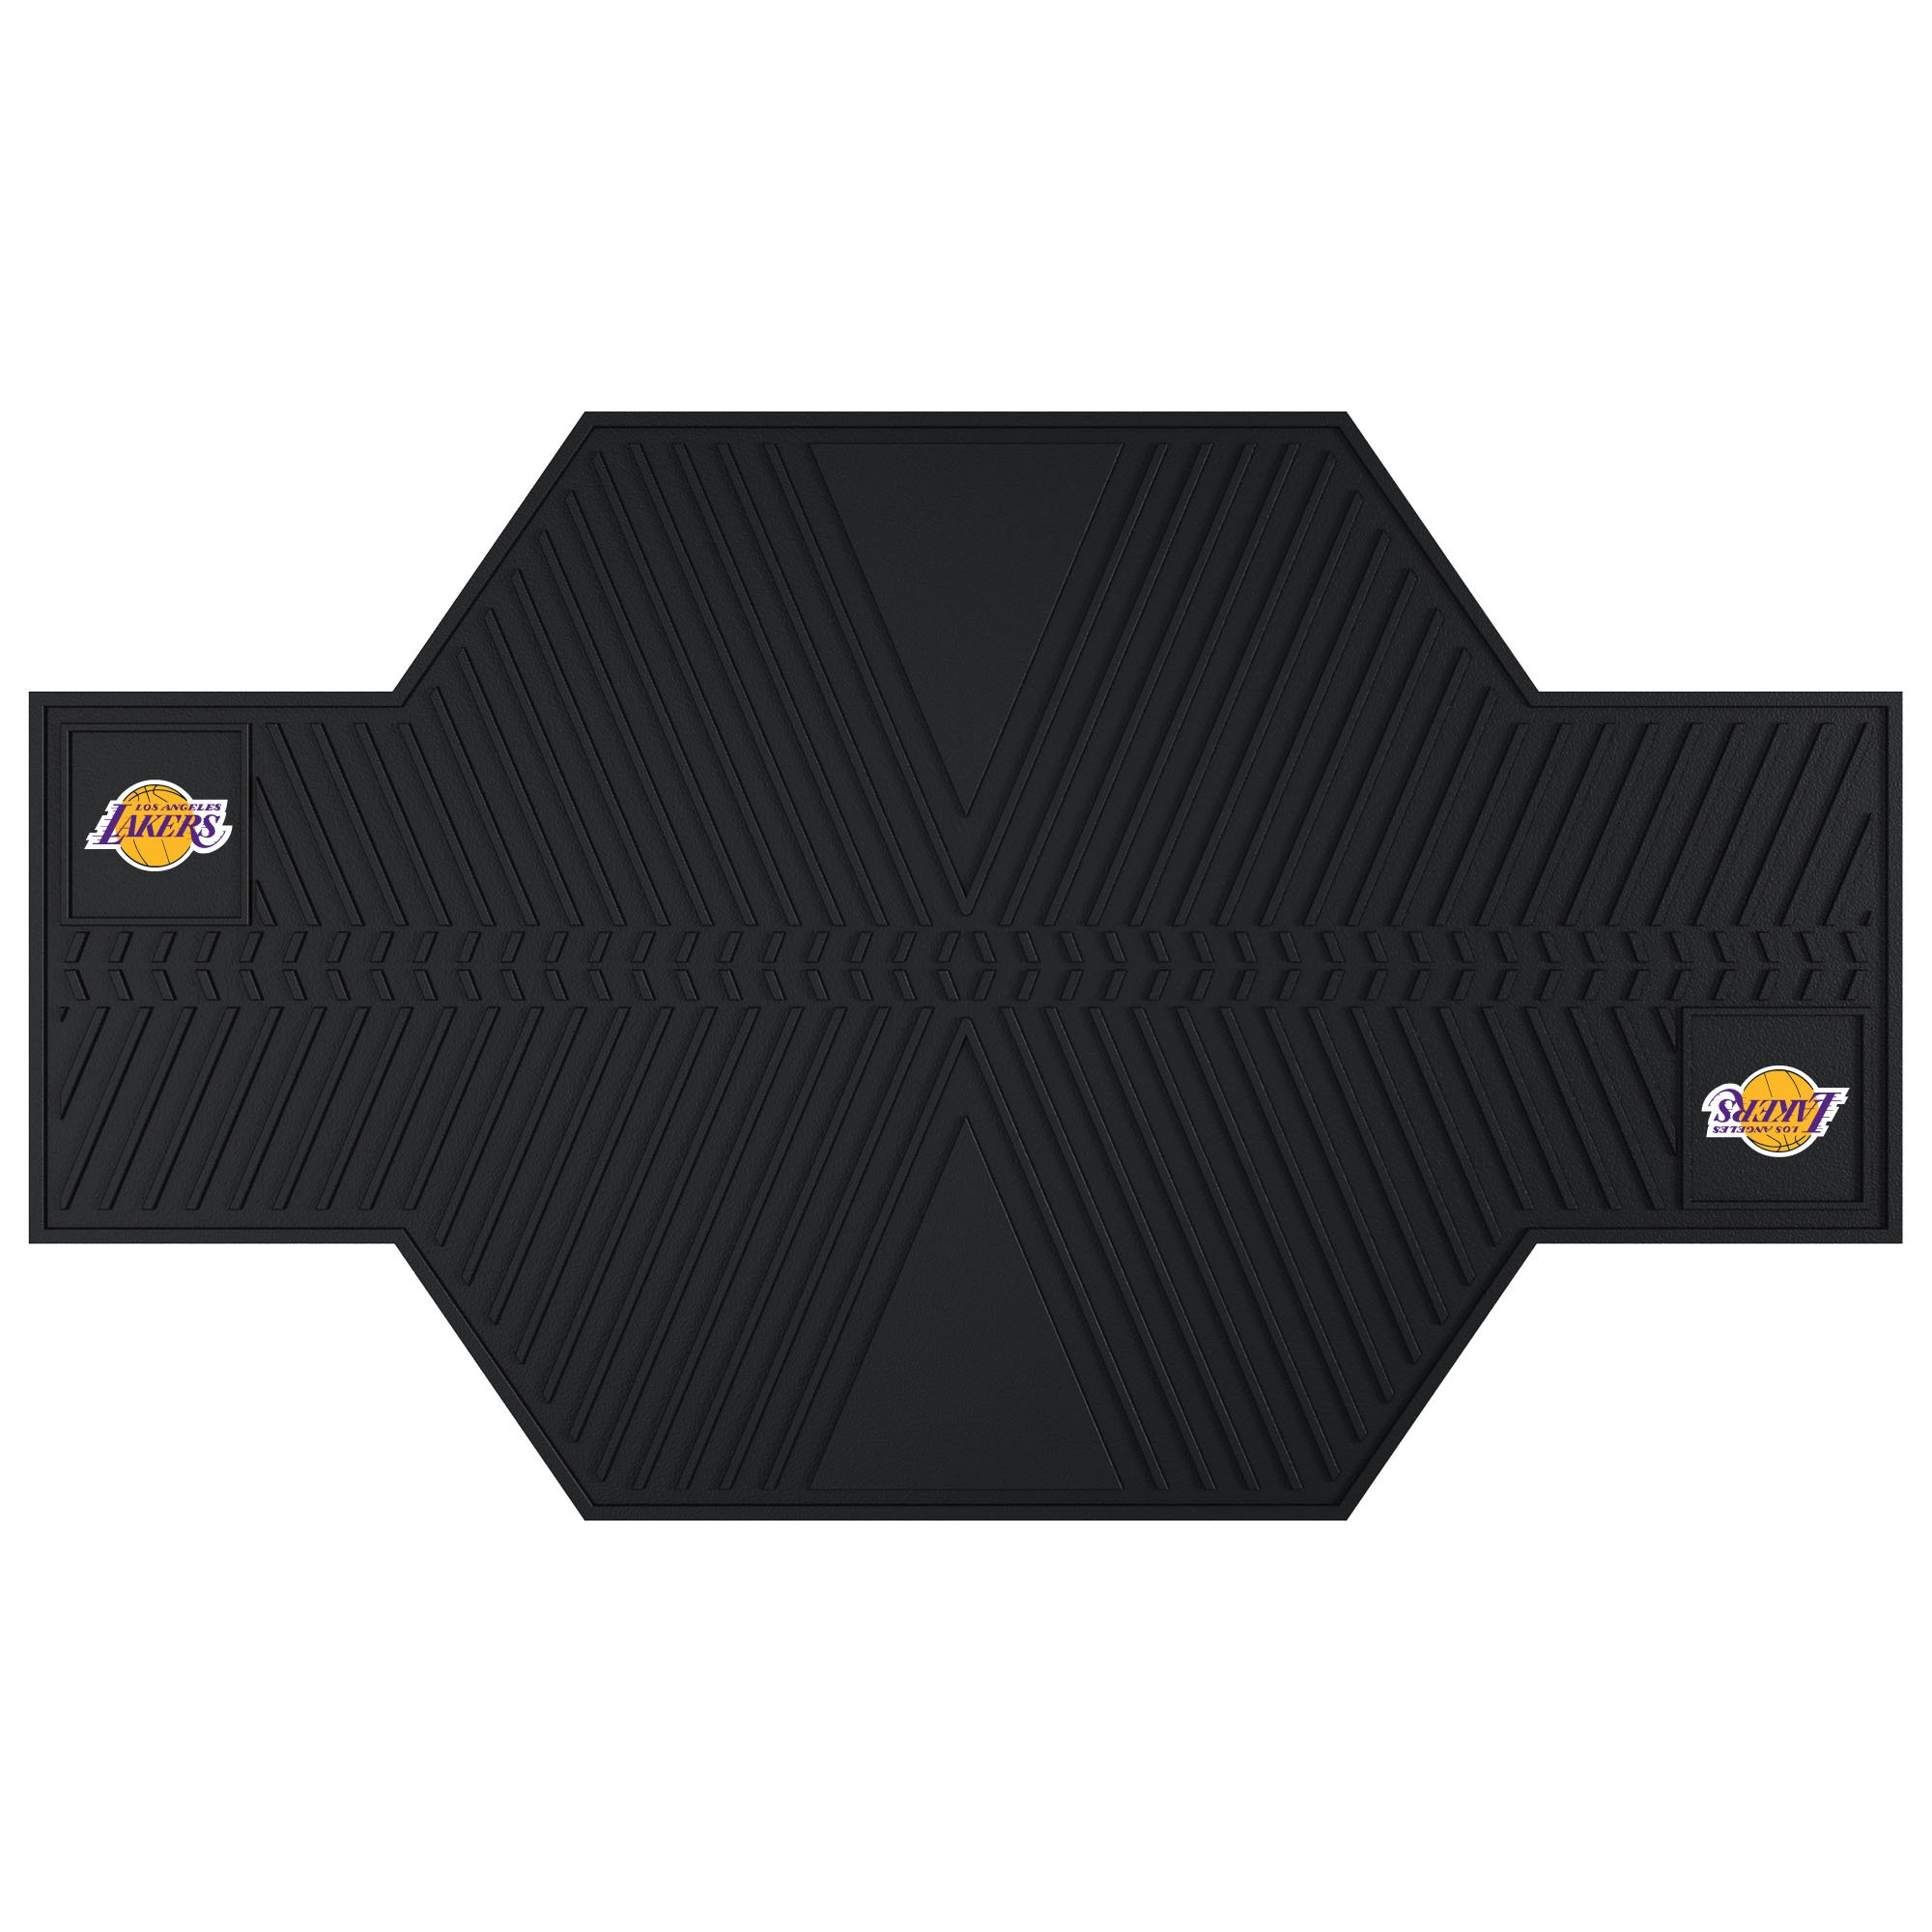 FANMATS 15381 NBA Los Angeles Lakers Motorcycle Mat